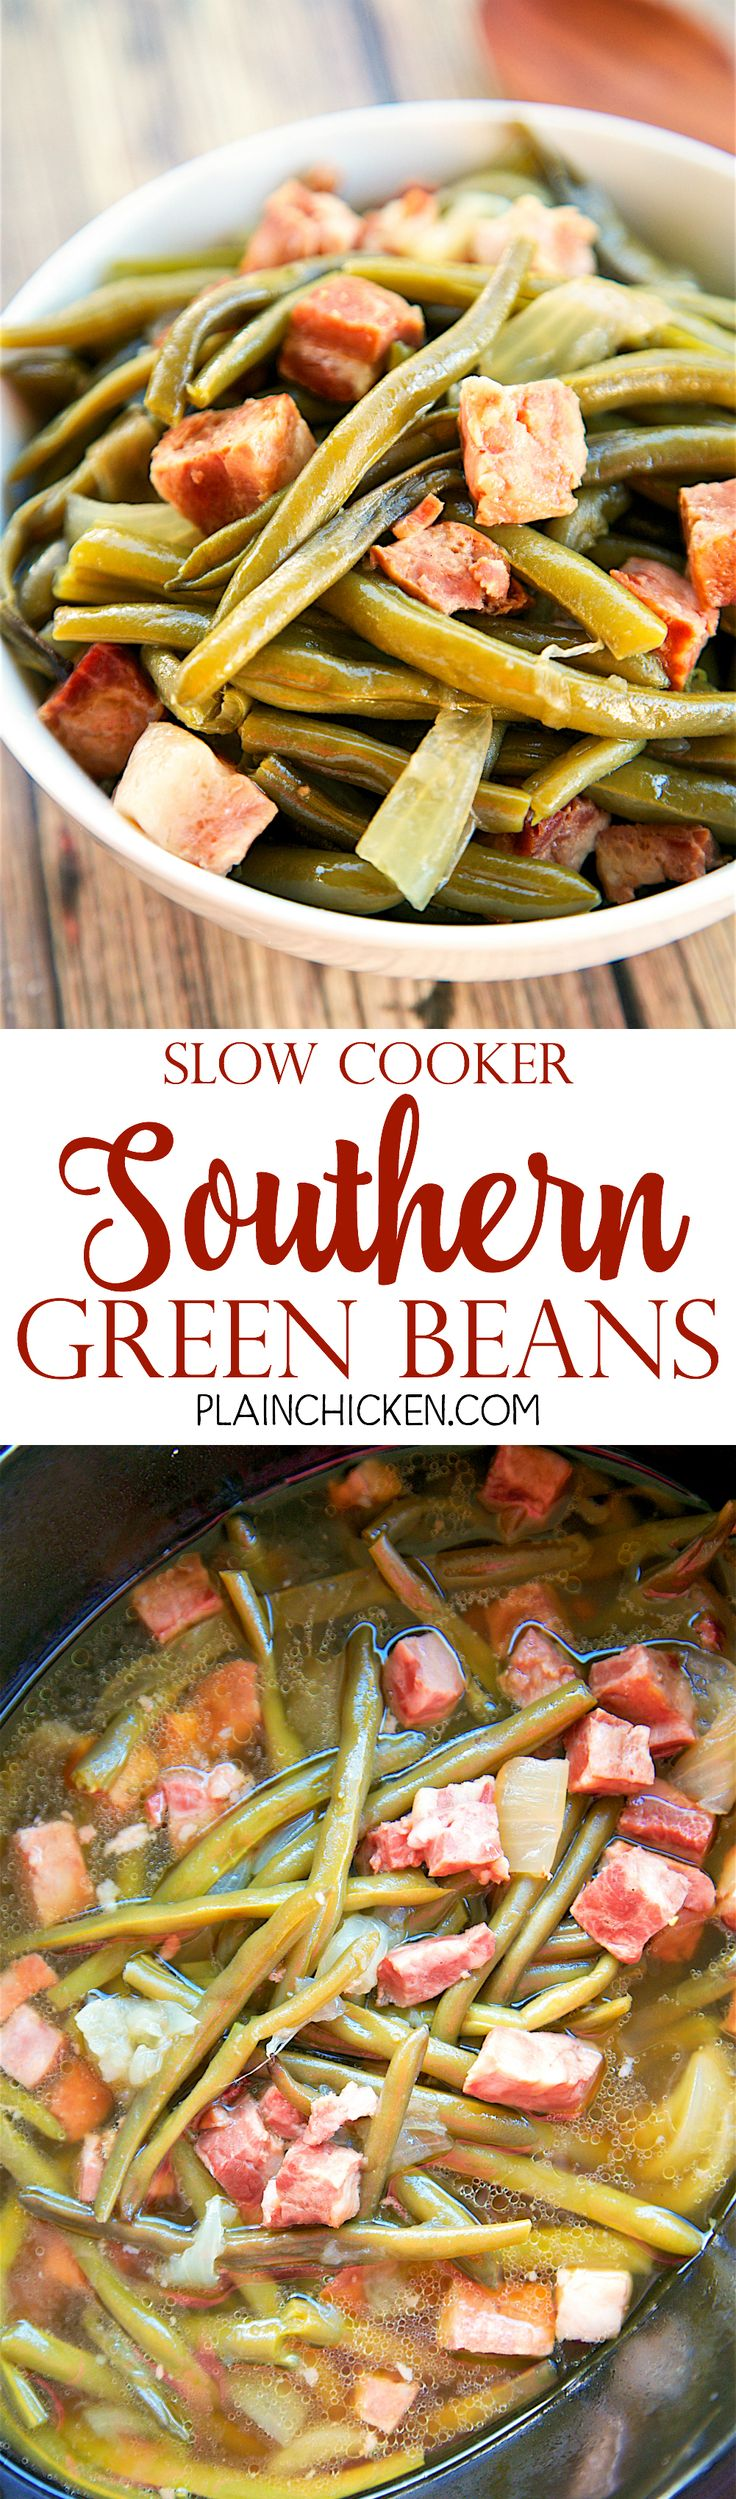 Slow Cooker Southern Green Beans - THE BEST green beans EVER! Only 5 ingredients - fresh green beans, ham, onion, cider vinegar, chicken broth. Dump everything in the slow cooker at it does all the work. Great for holiday meals! We make these all the time!!